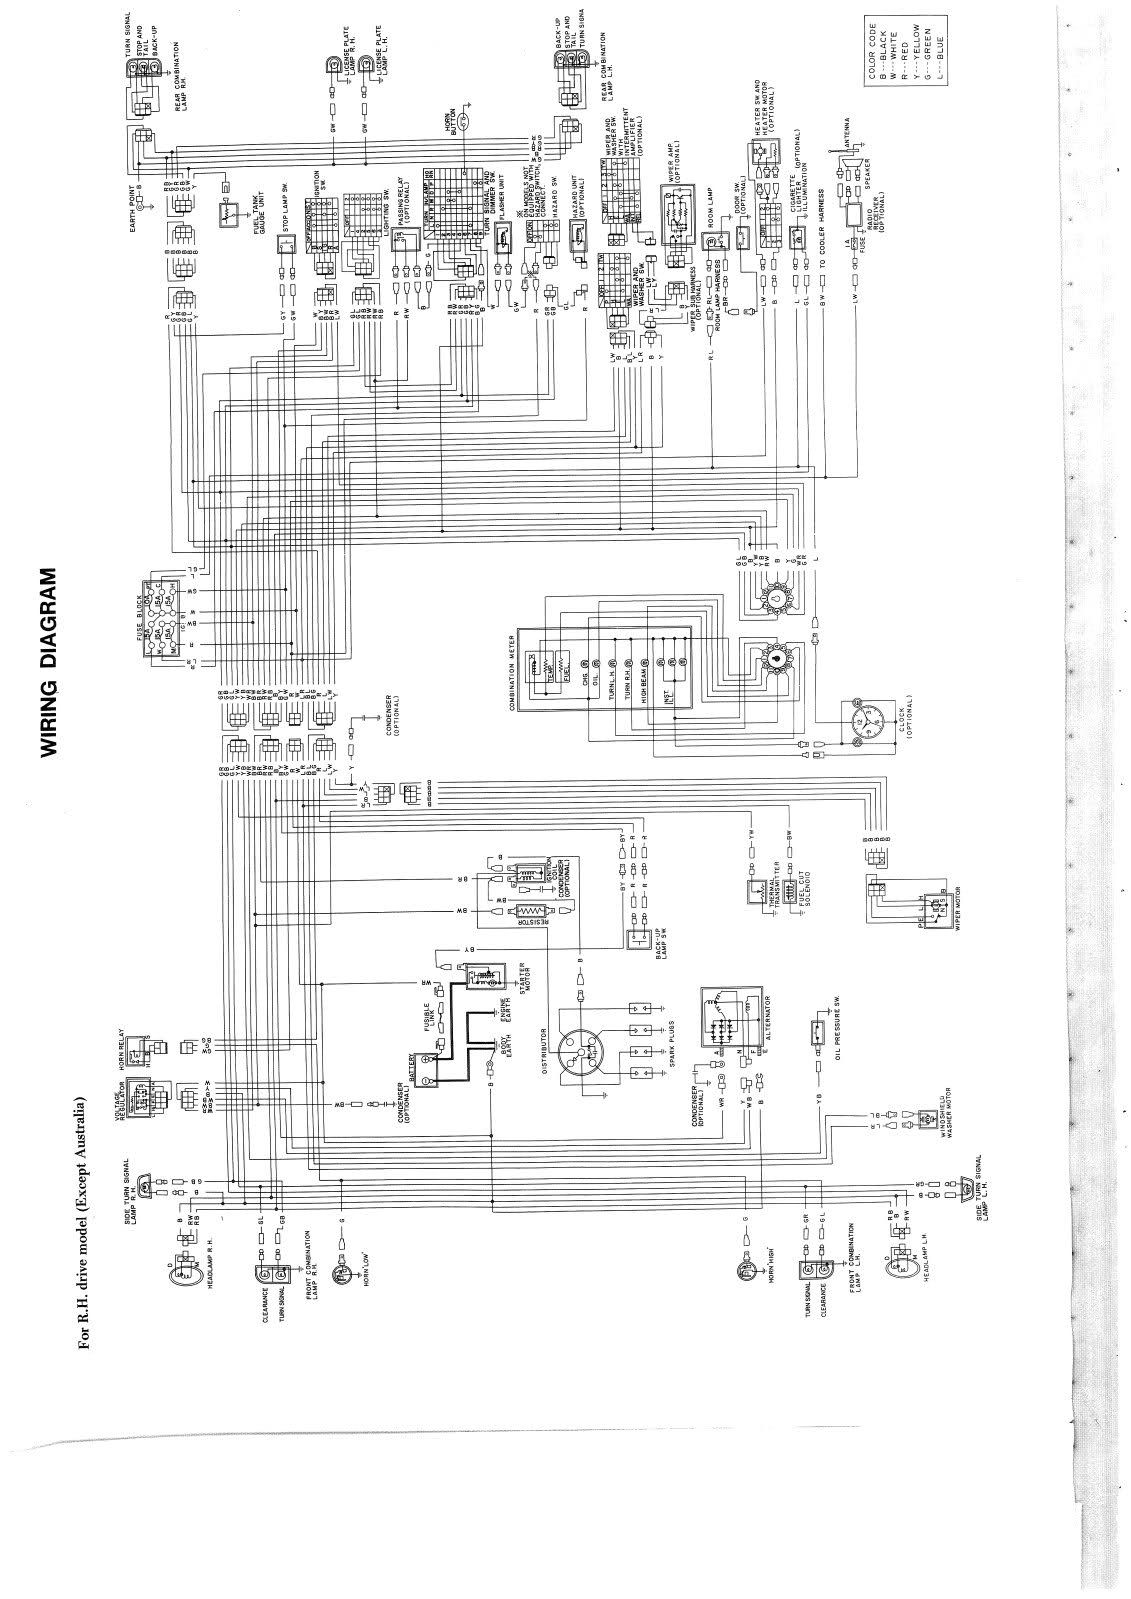 Nissan 1400 Wiring Diagram Free Download Product Diagrams Silencer Alarm For Bakkie Rh Xwiaw Us 2004 Altima